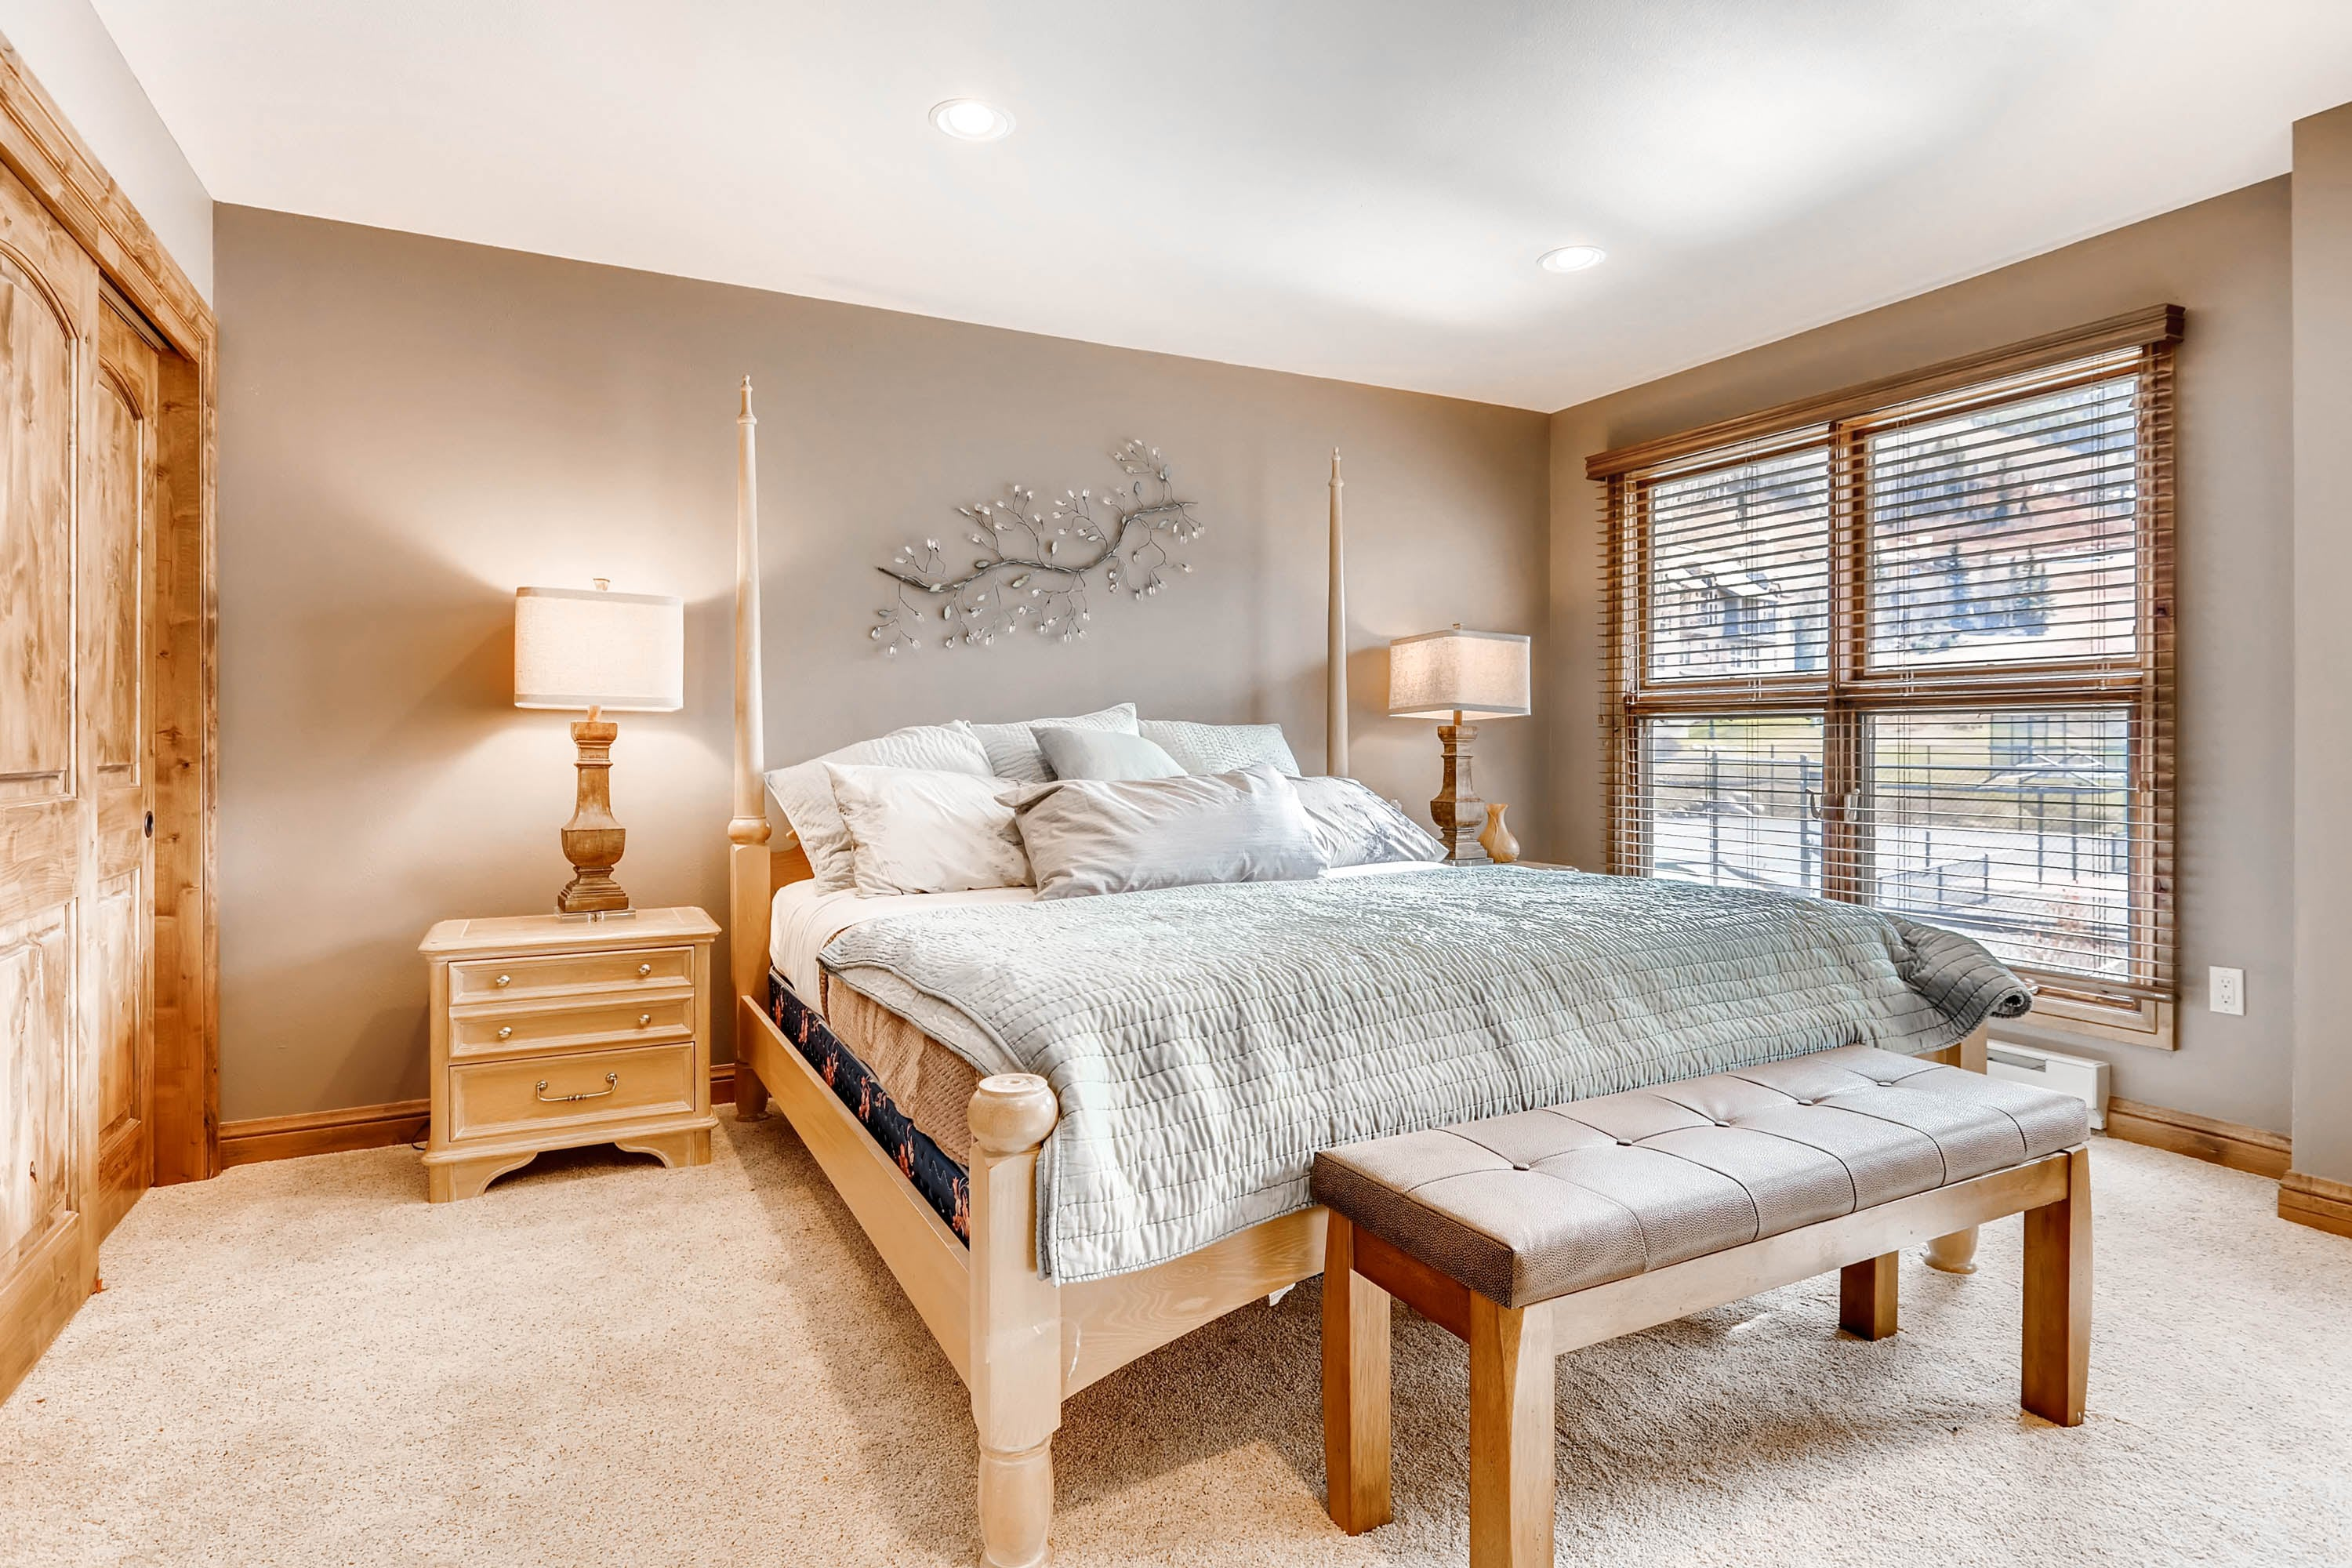 Property Image 2 - Elegant Mountain Townhome in Beaver Creek